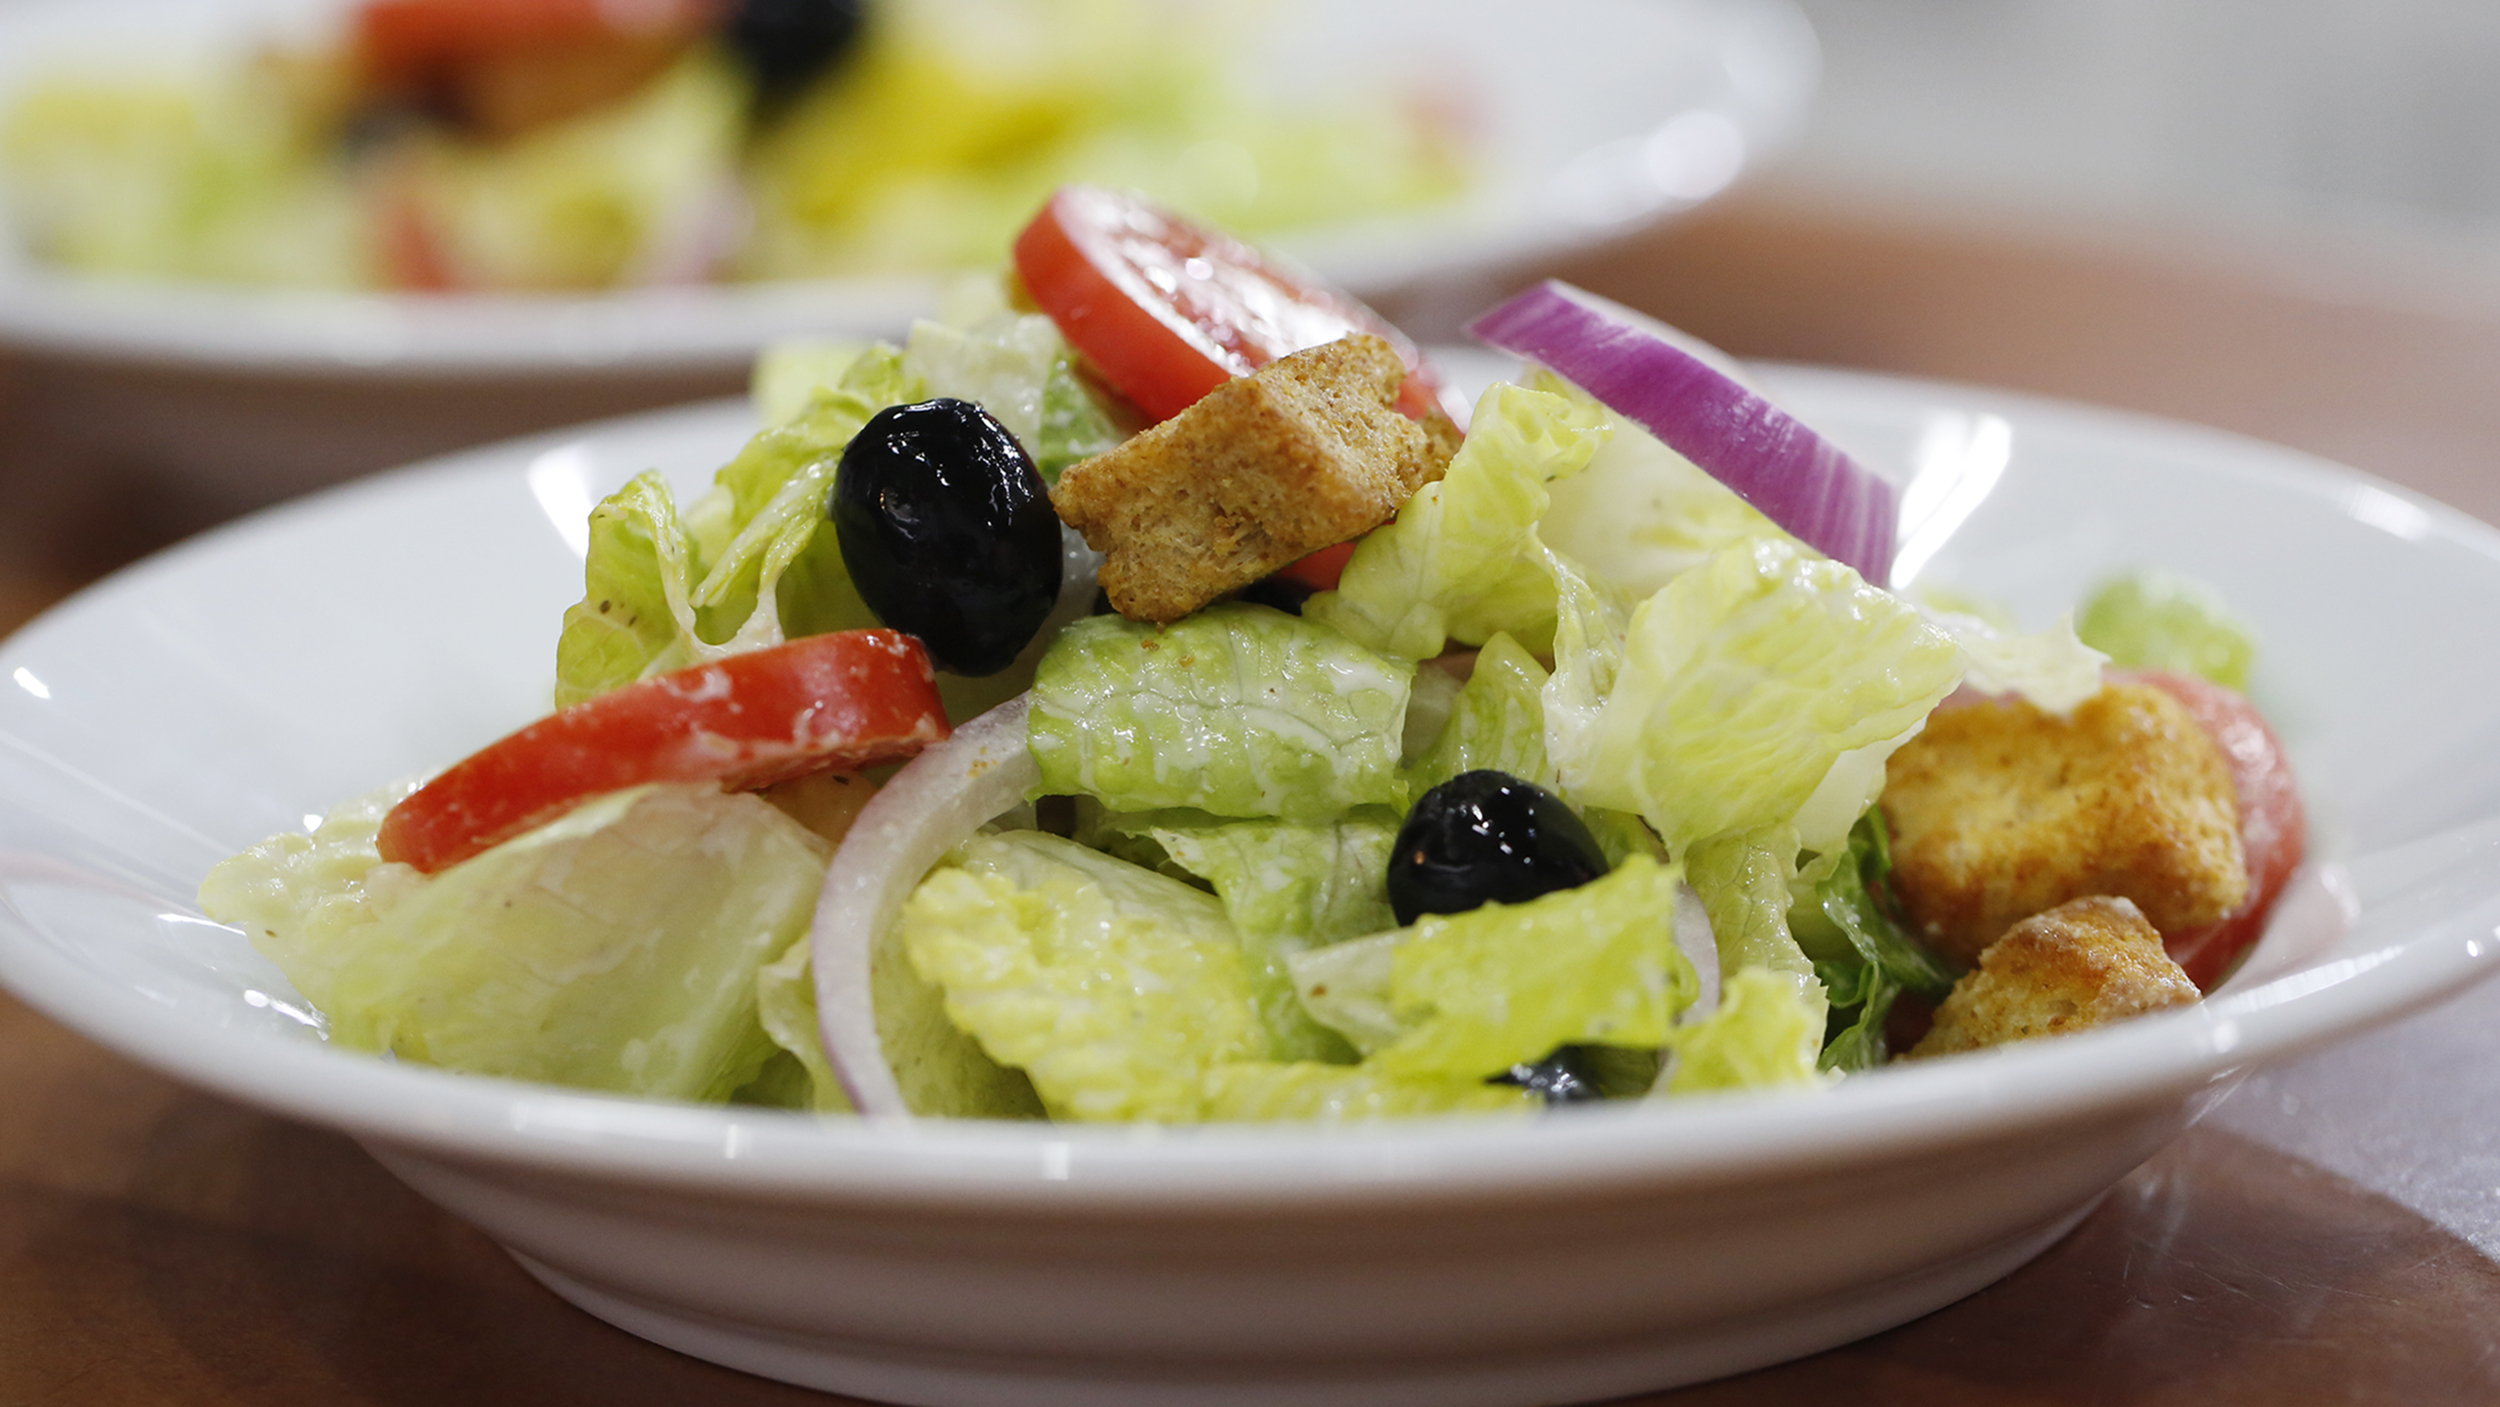 Olive garden style salad with creamy italian dressing for Olive garden salad dressing ingredients